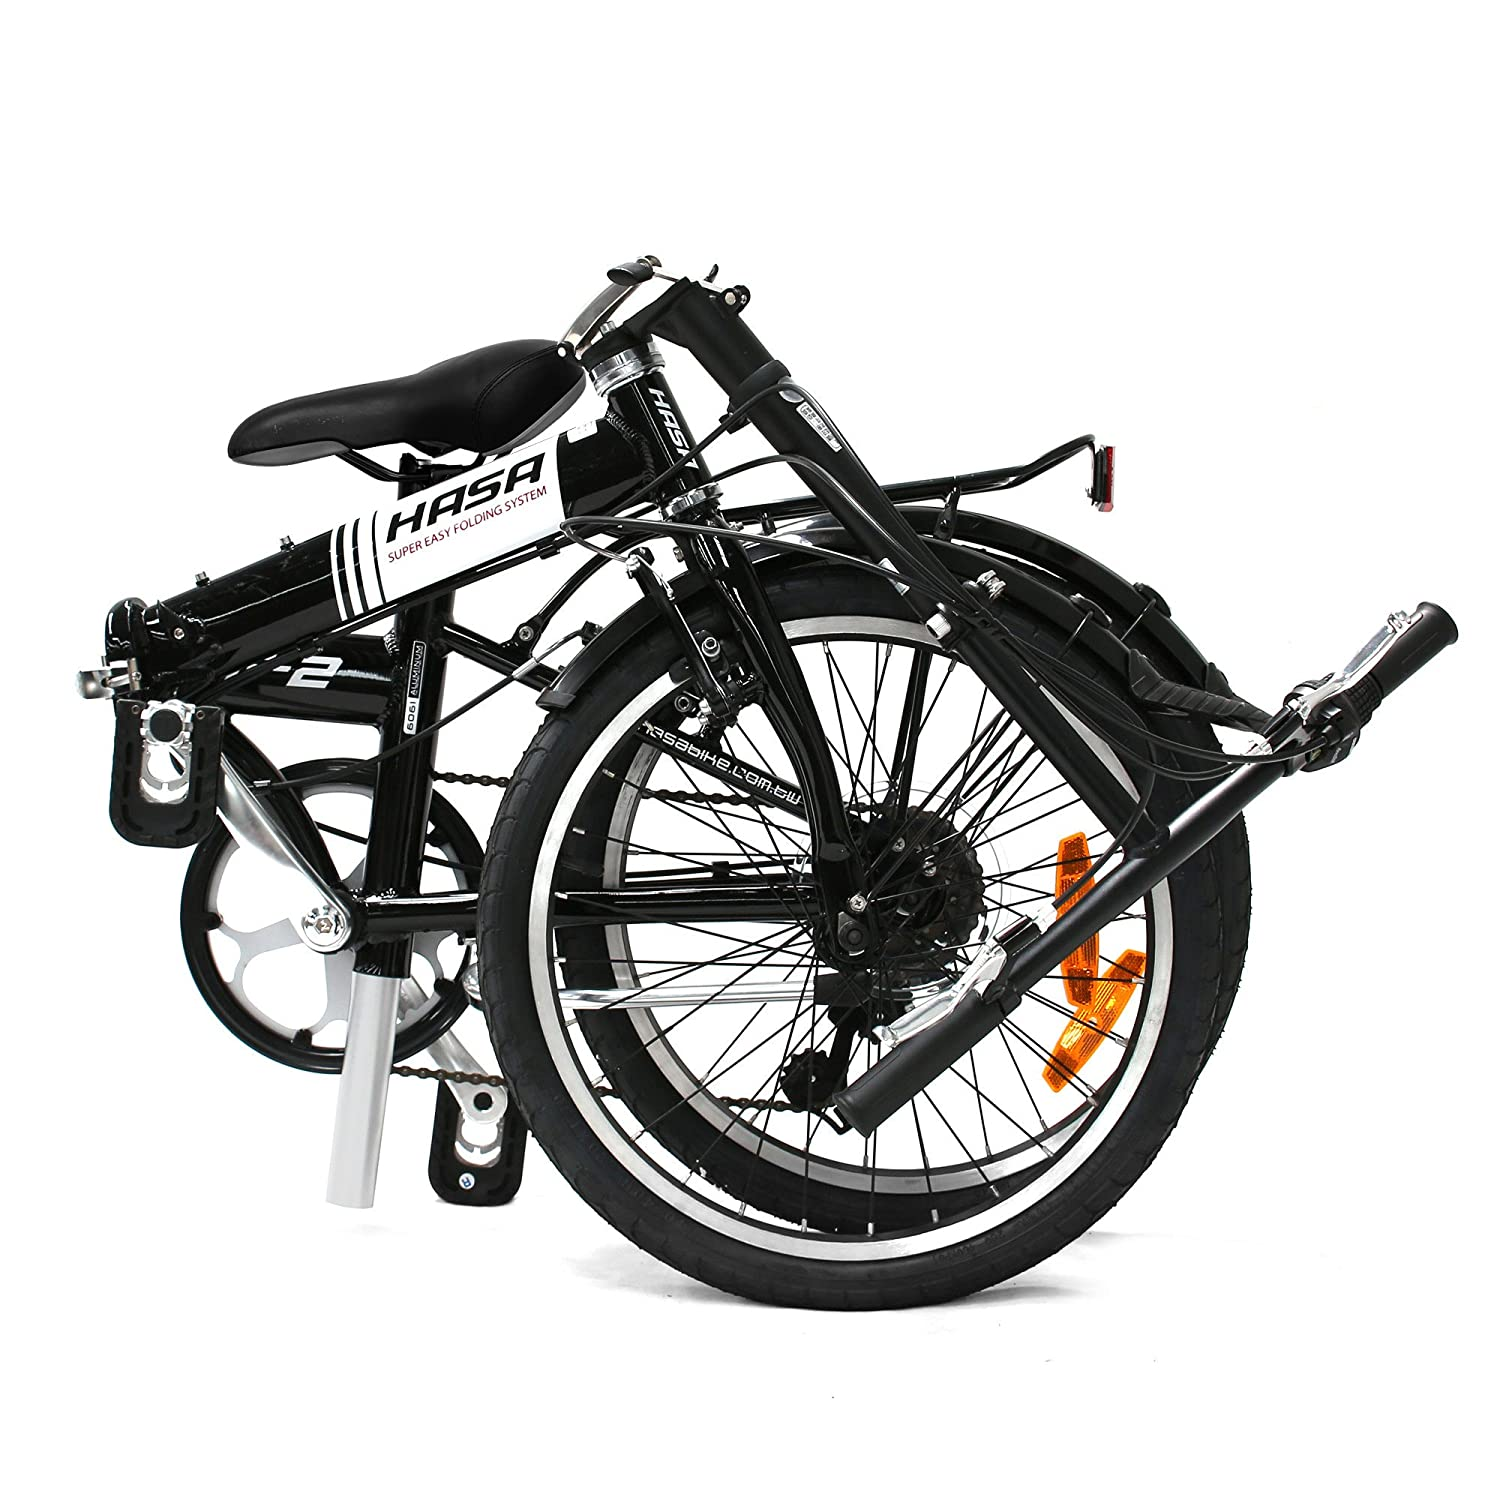 Hasa Sram F2 6 Speed Folding Bike Review